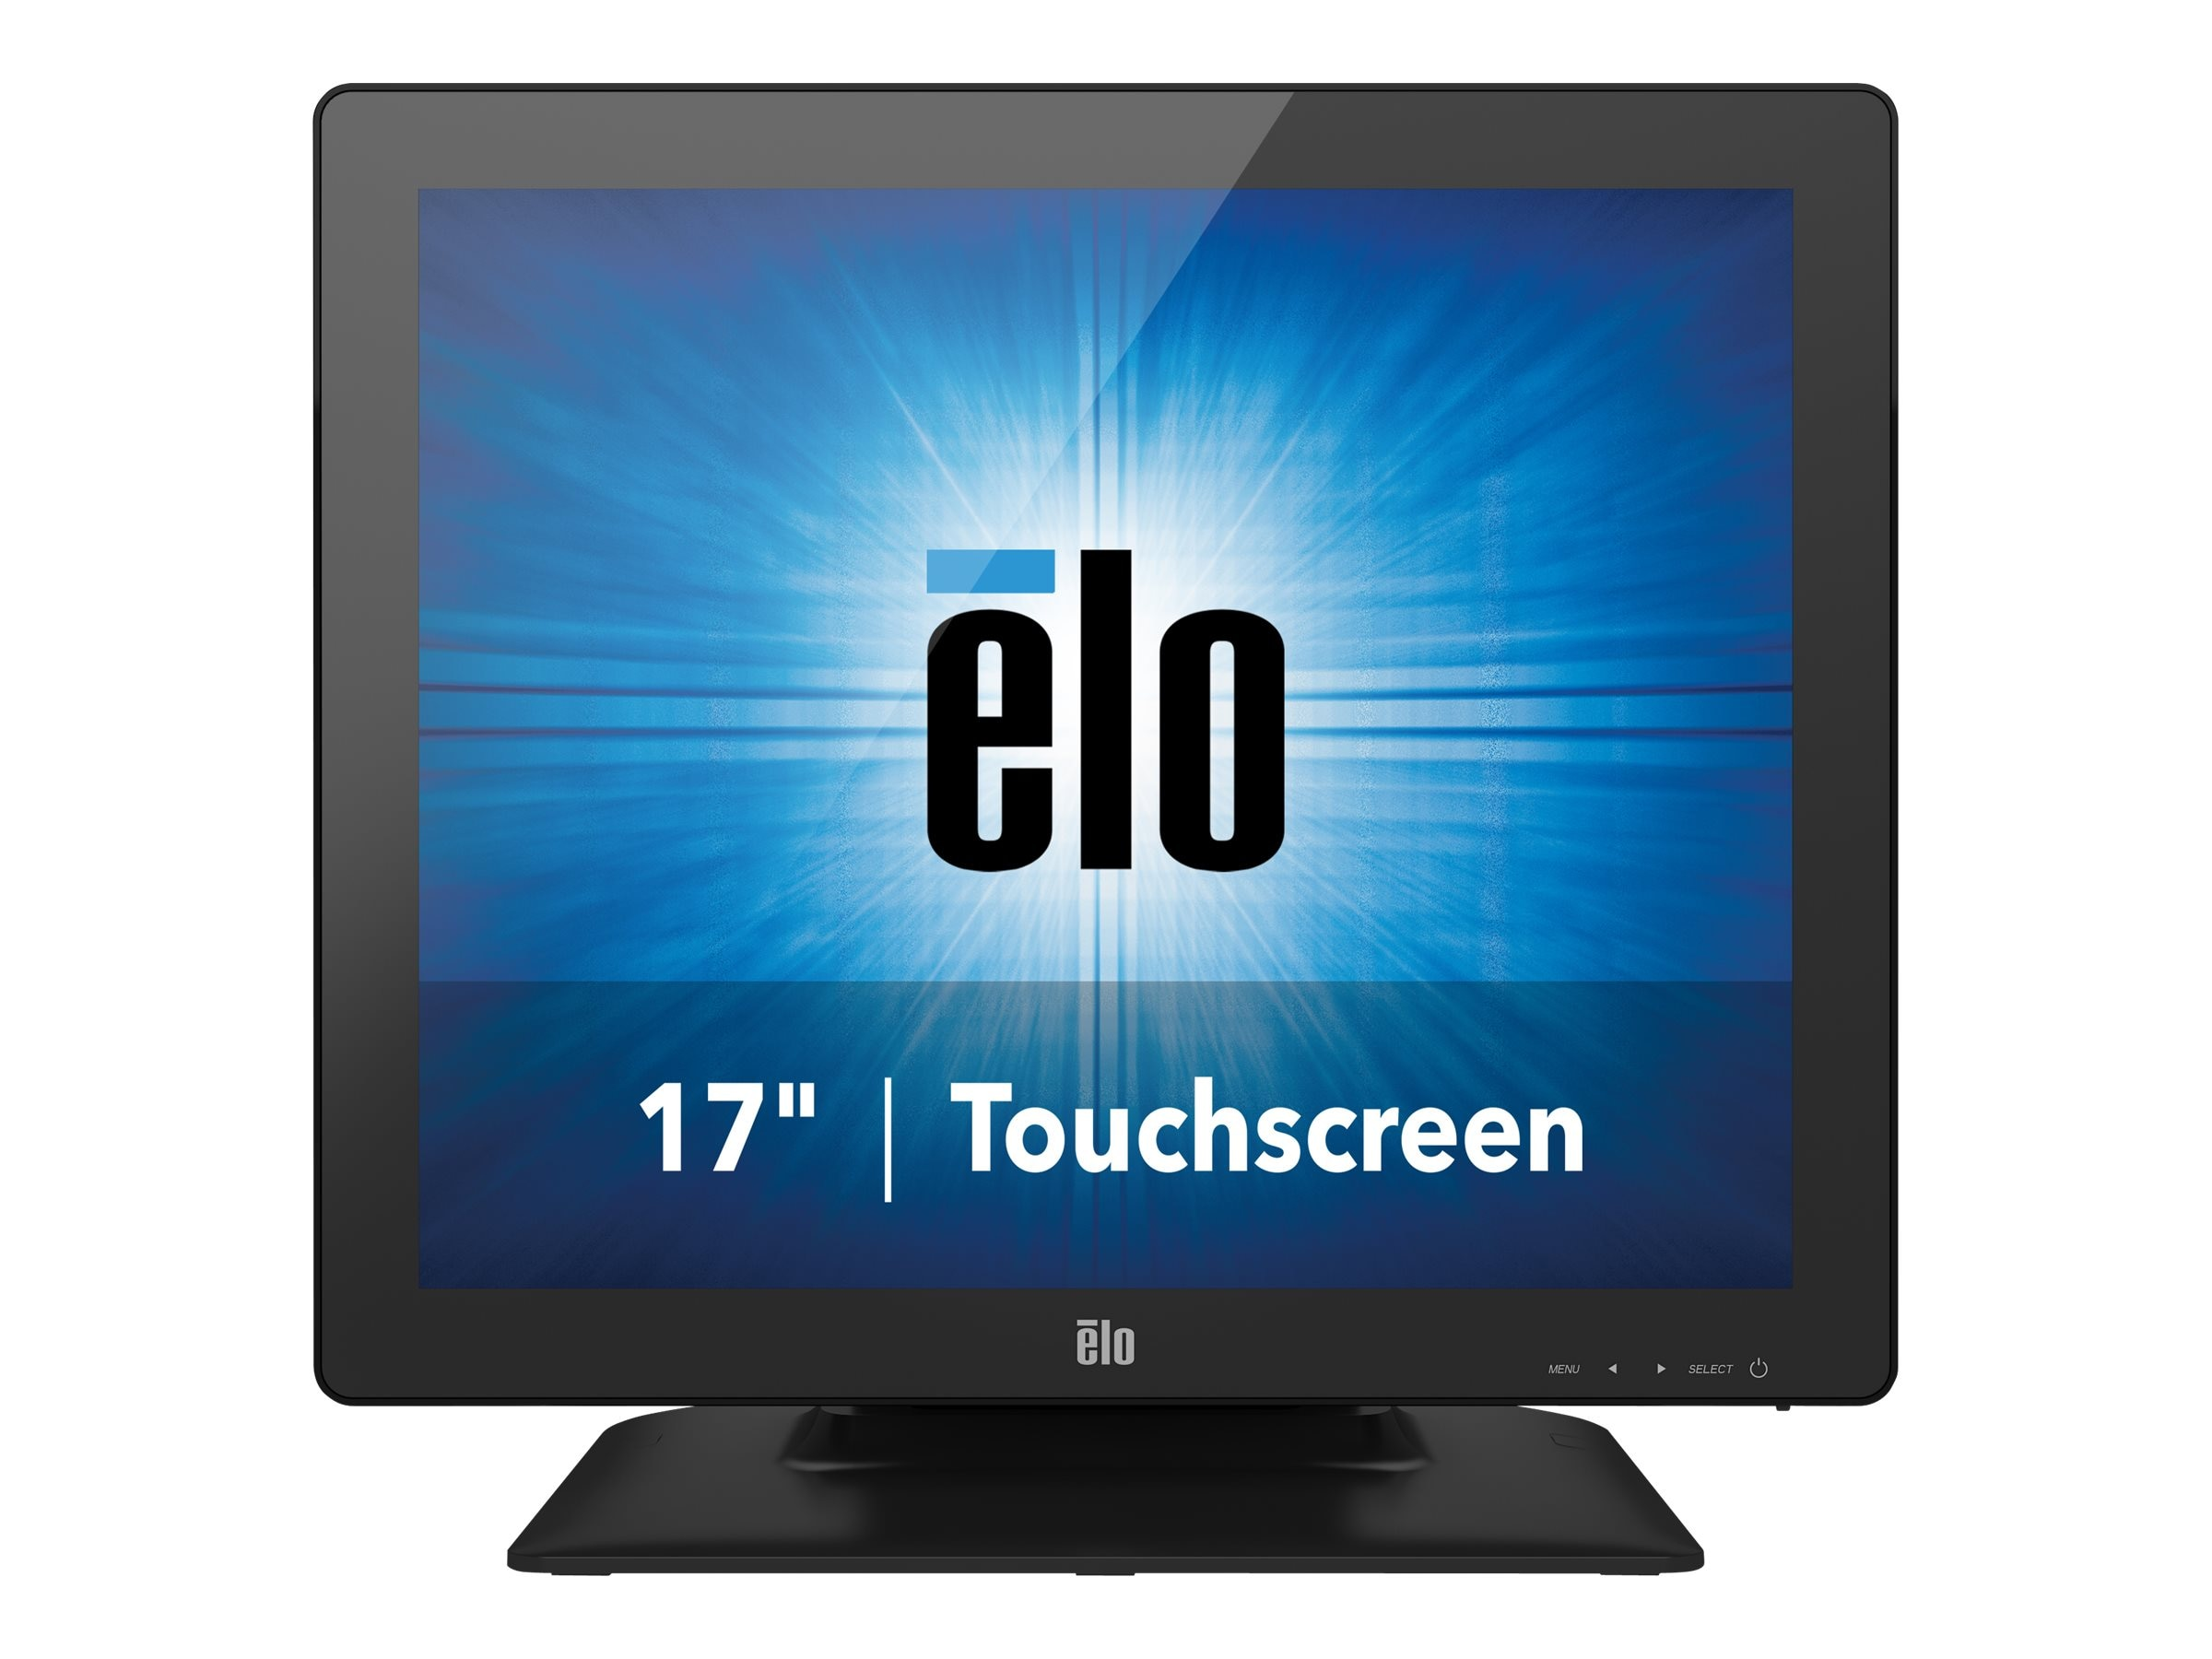 ELO Touch Solutions 17 1723L LCD IntelliTouch Pro PCAP Monitor, Black